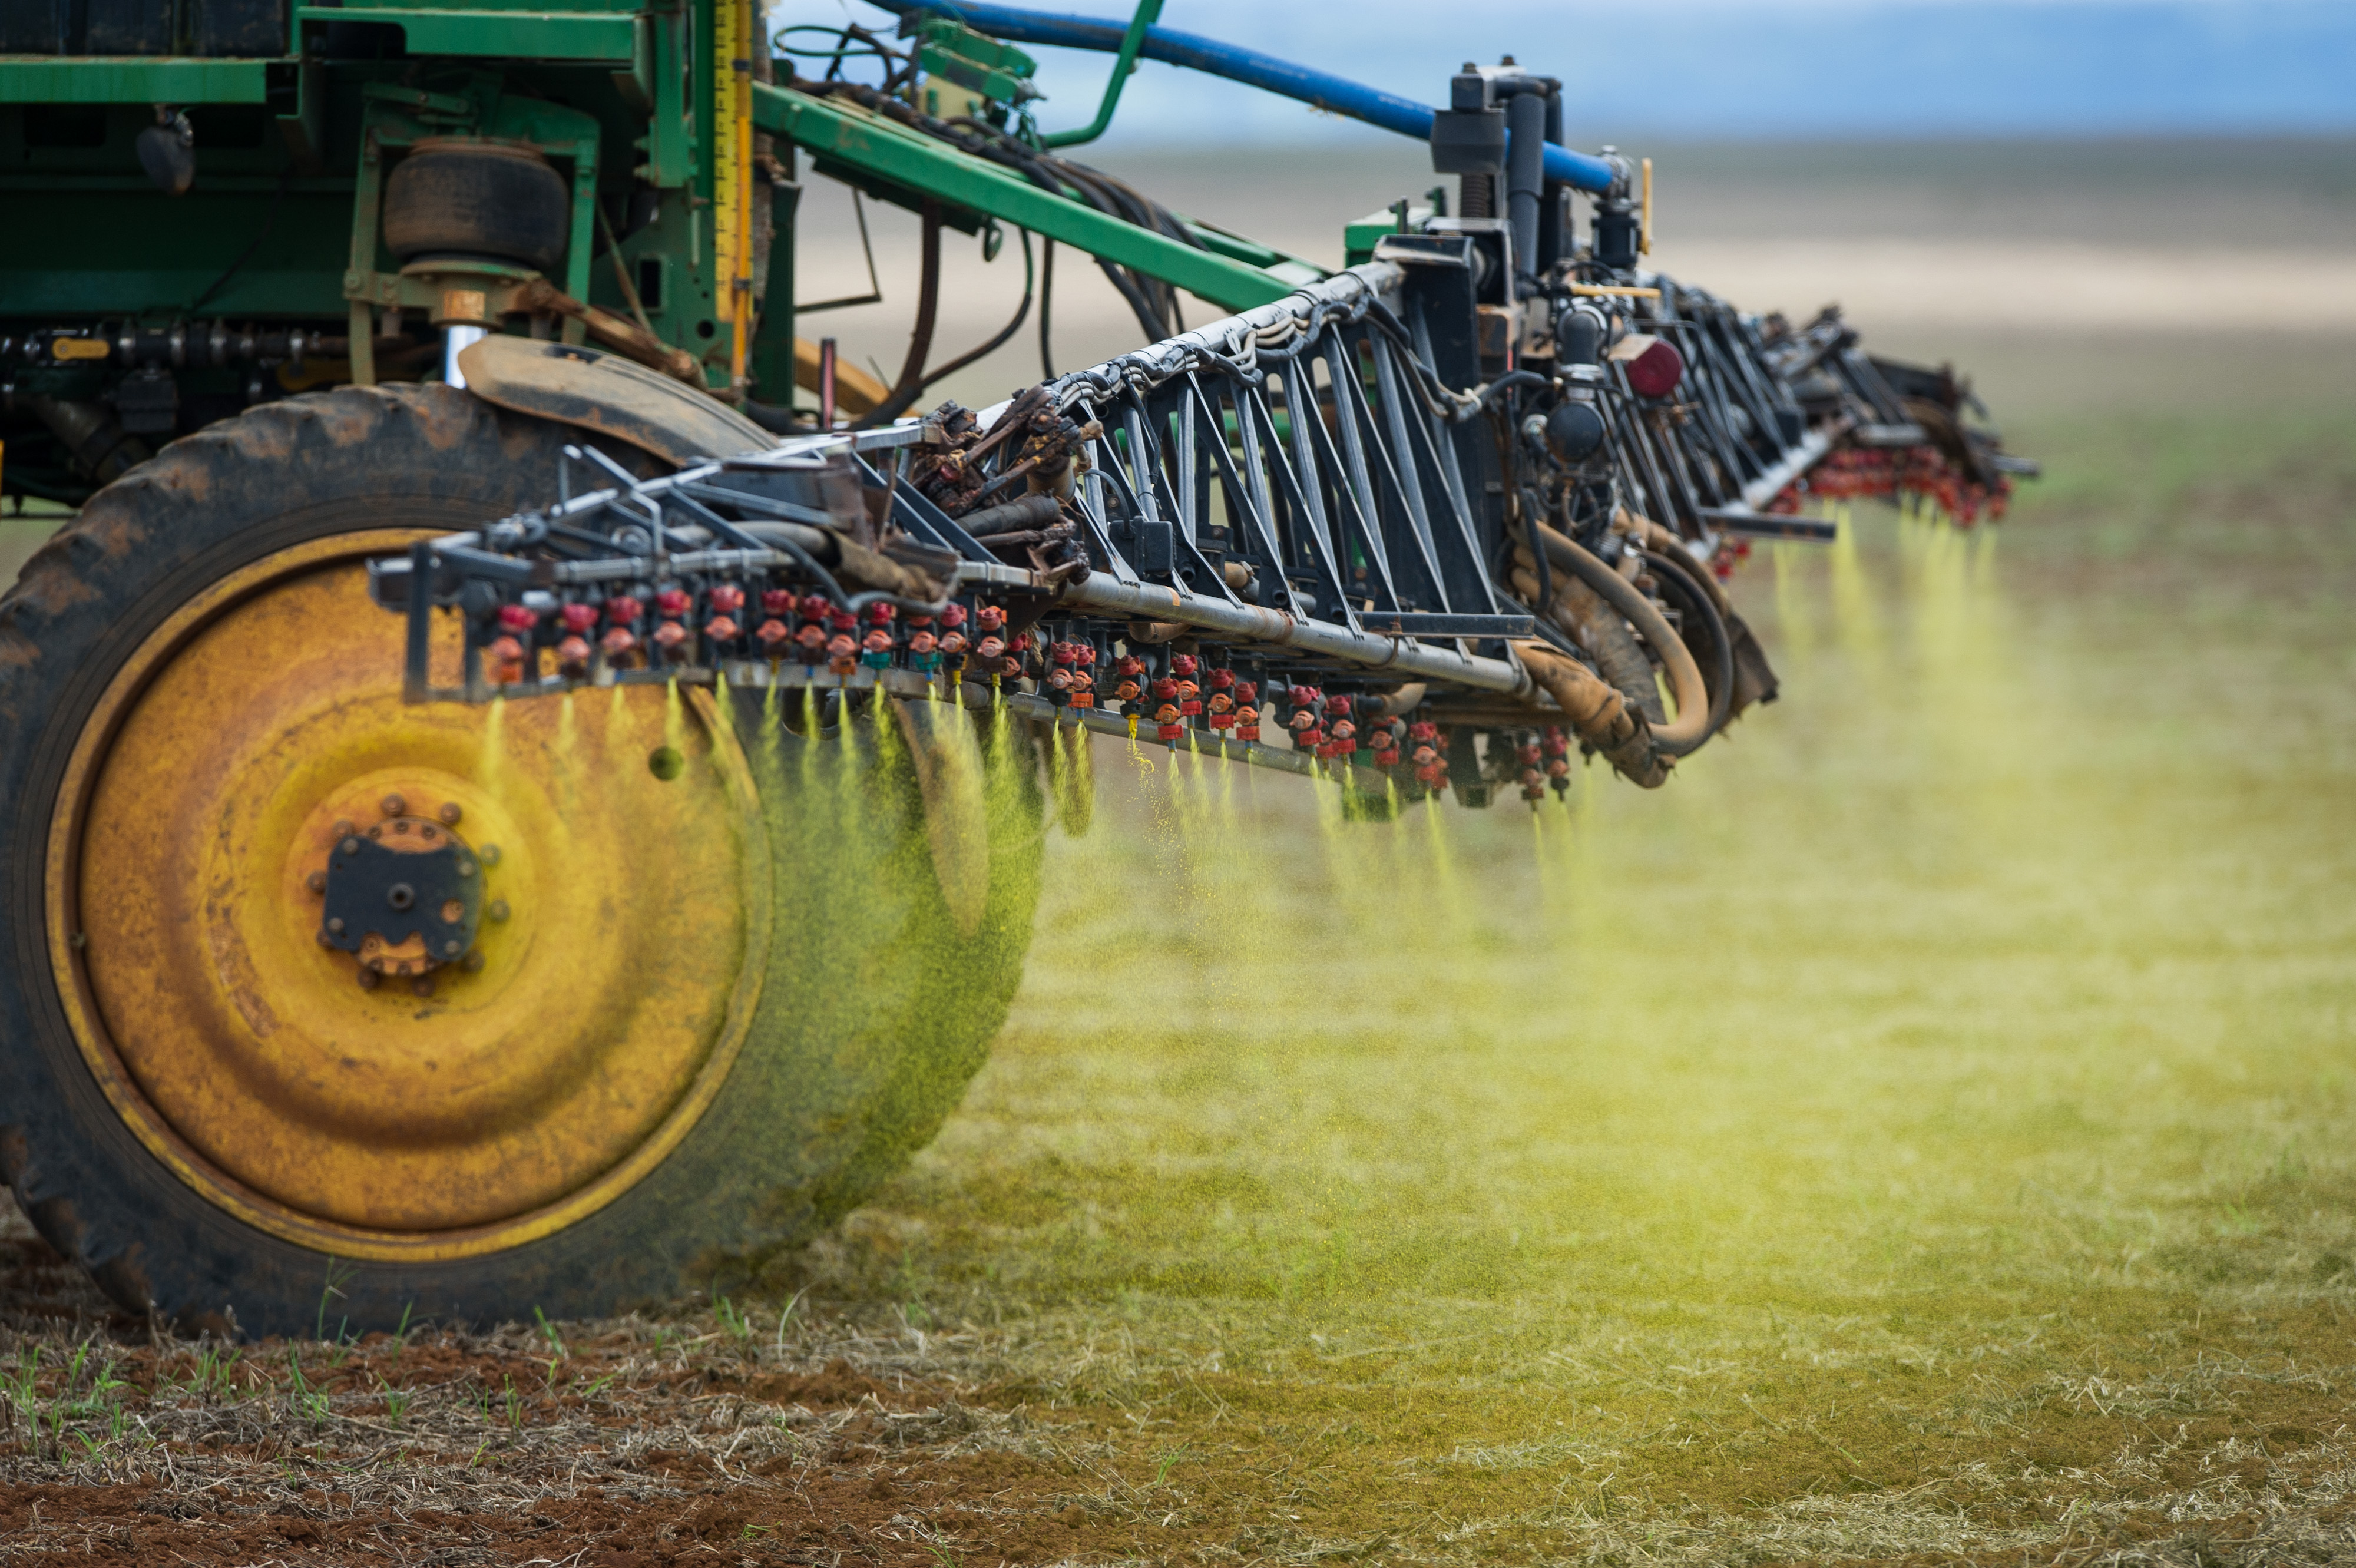 Herbicide is sprayed on a soybean field in the Cerrado plains near Campo Verde, Mato Grosso state, western Brazil on Jan. 30, 2011. (Yasuyoshi Chiba/AFP/Getty Images)